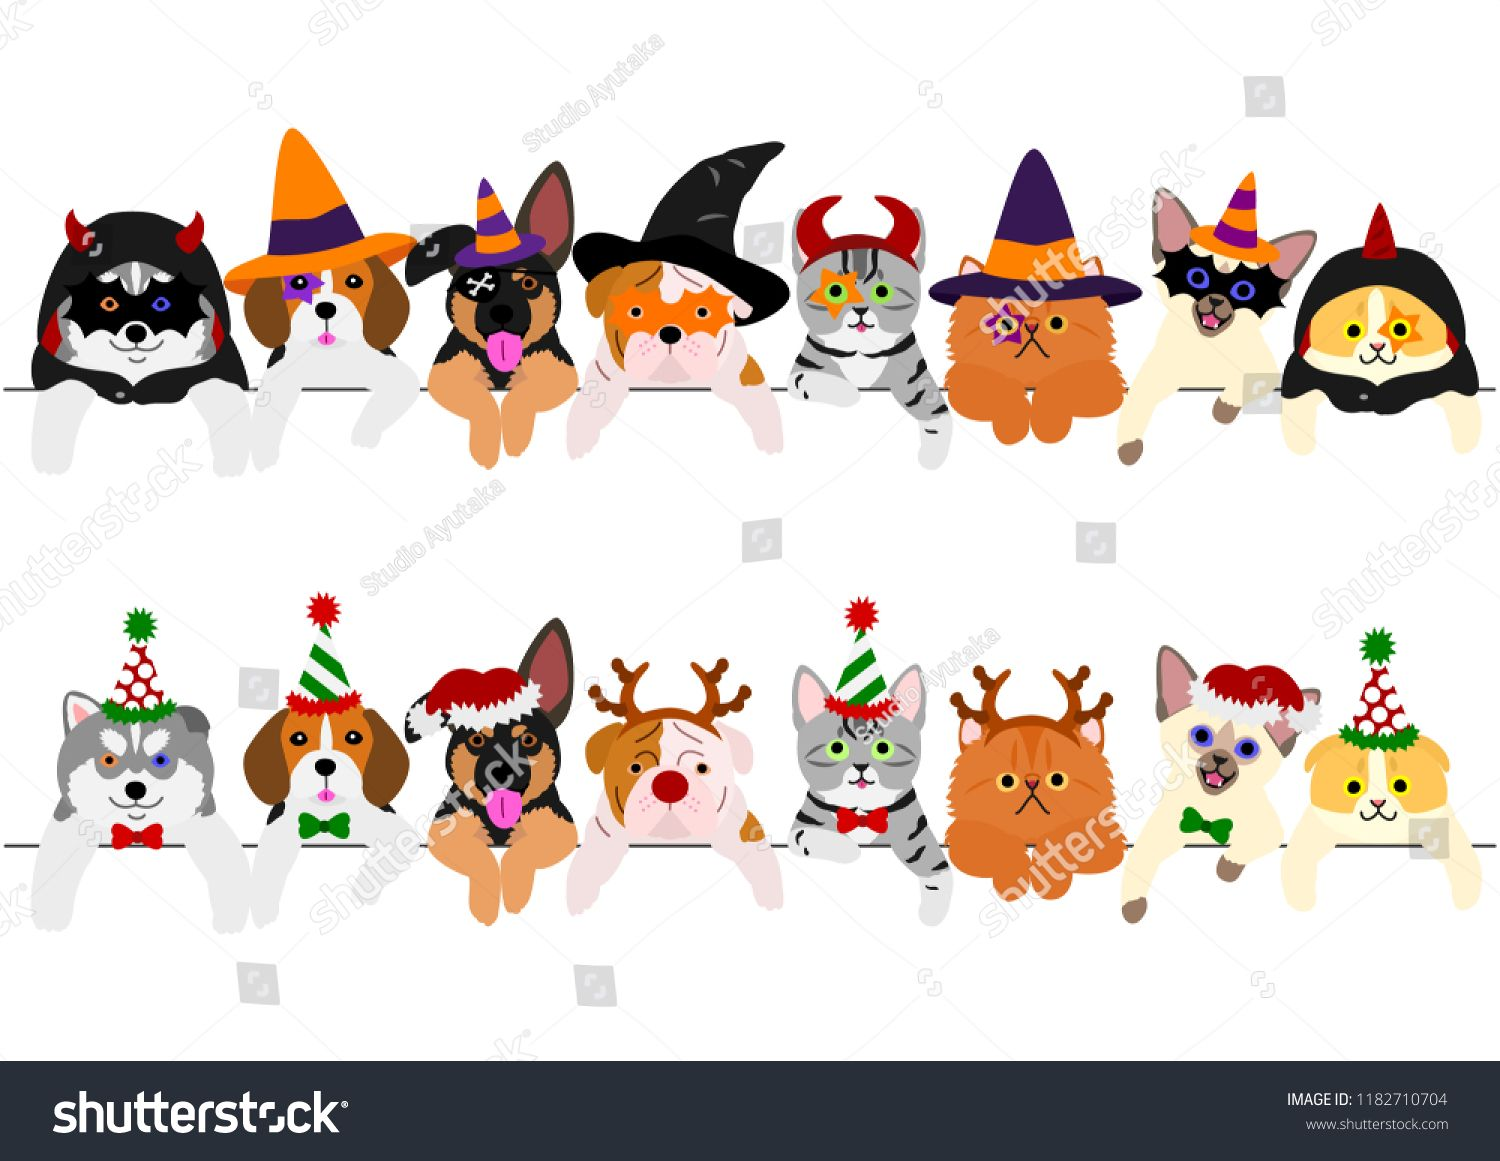 Cute Puppies And Kitties Border Set With Halloween Costumes And With Christmas Costumes Puppies And Kitties Cute Puppies Puppies